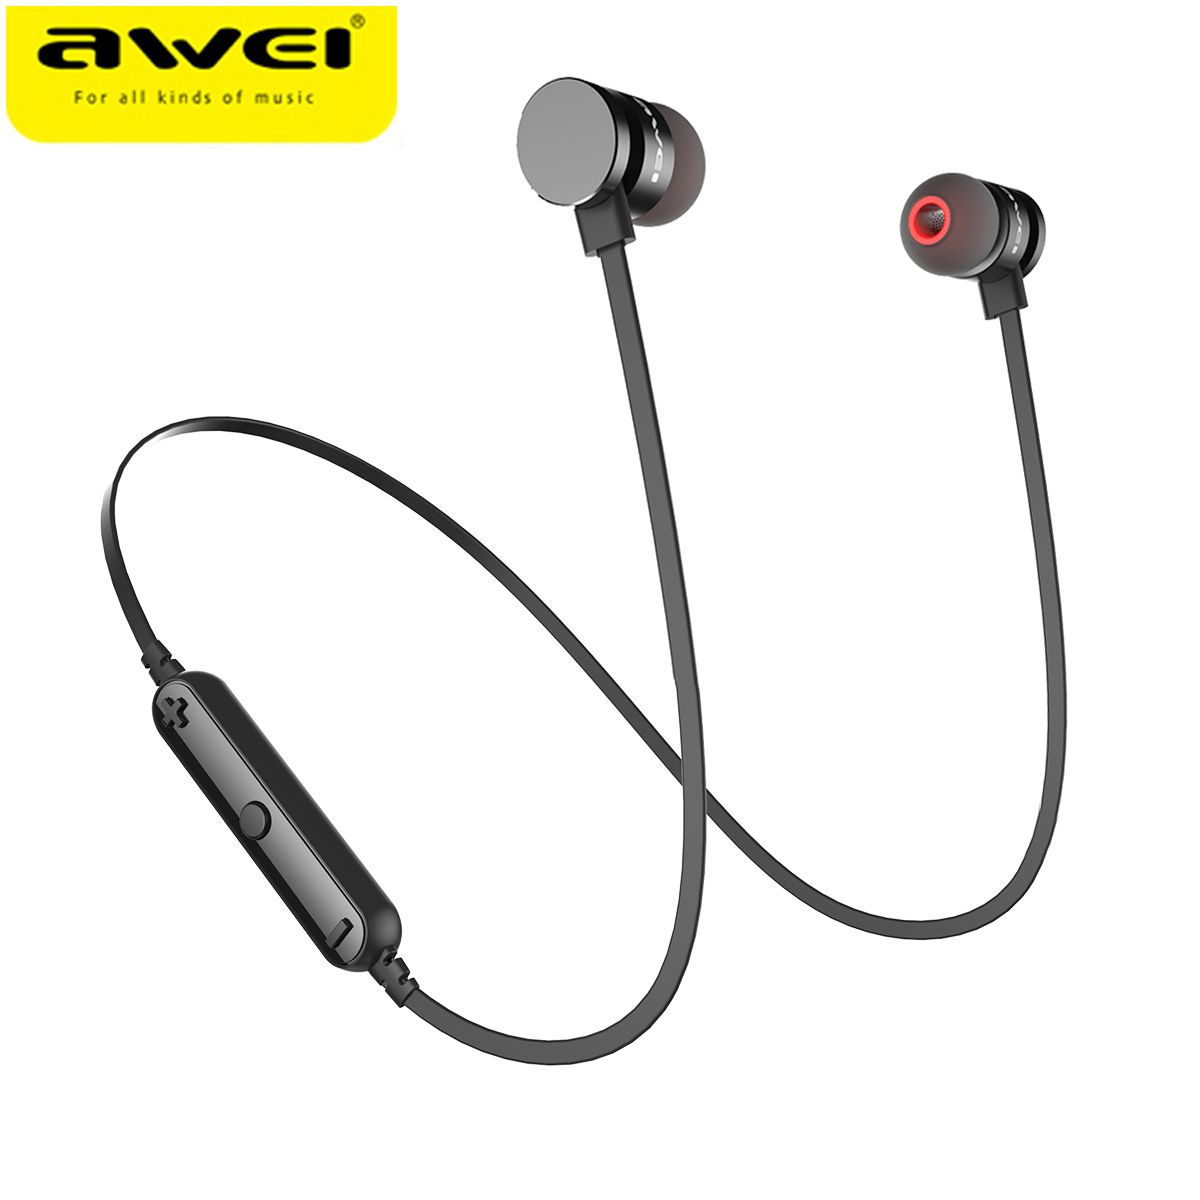 Newest AWEI T11 Wireless Headphone <font><b>Bluetooth</b></font> Headset Earphone Fone de ouvido Sports Music V4.2 Auriculares <font><b>Bluetooth</b></font> Casque